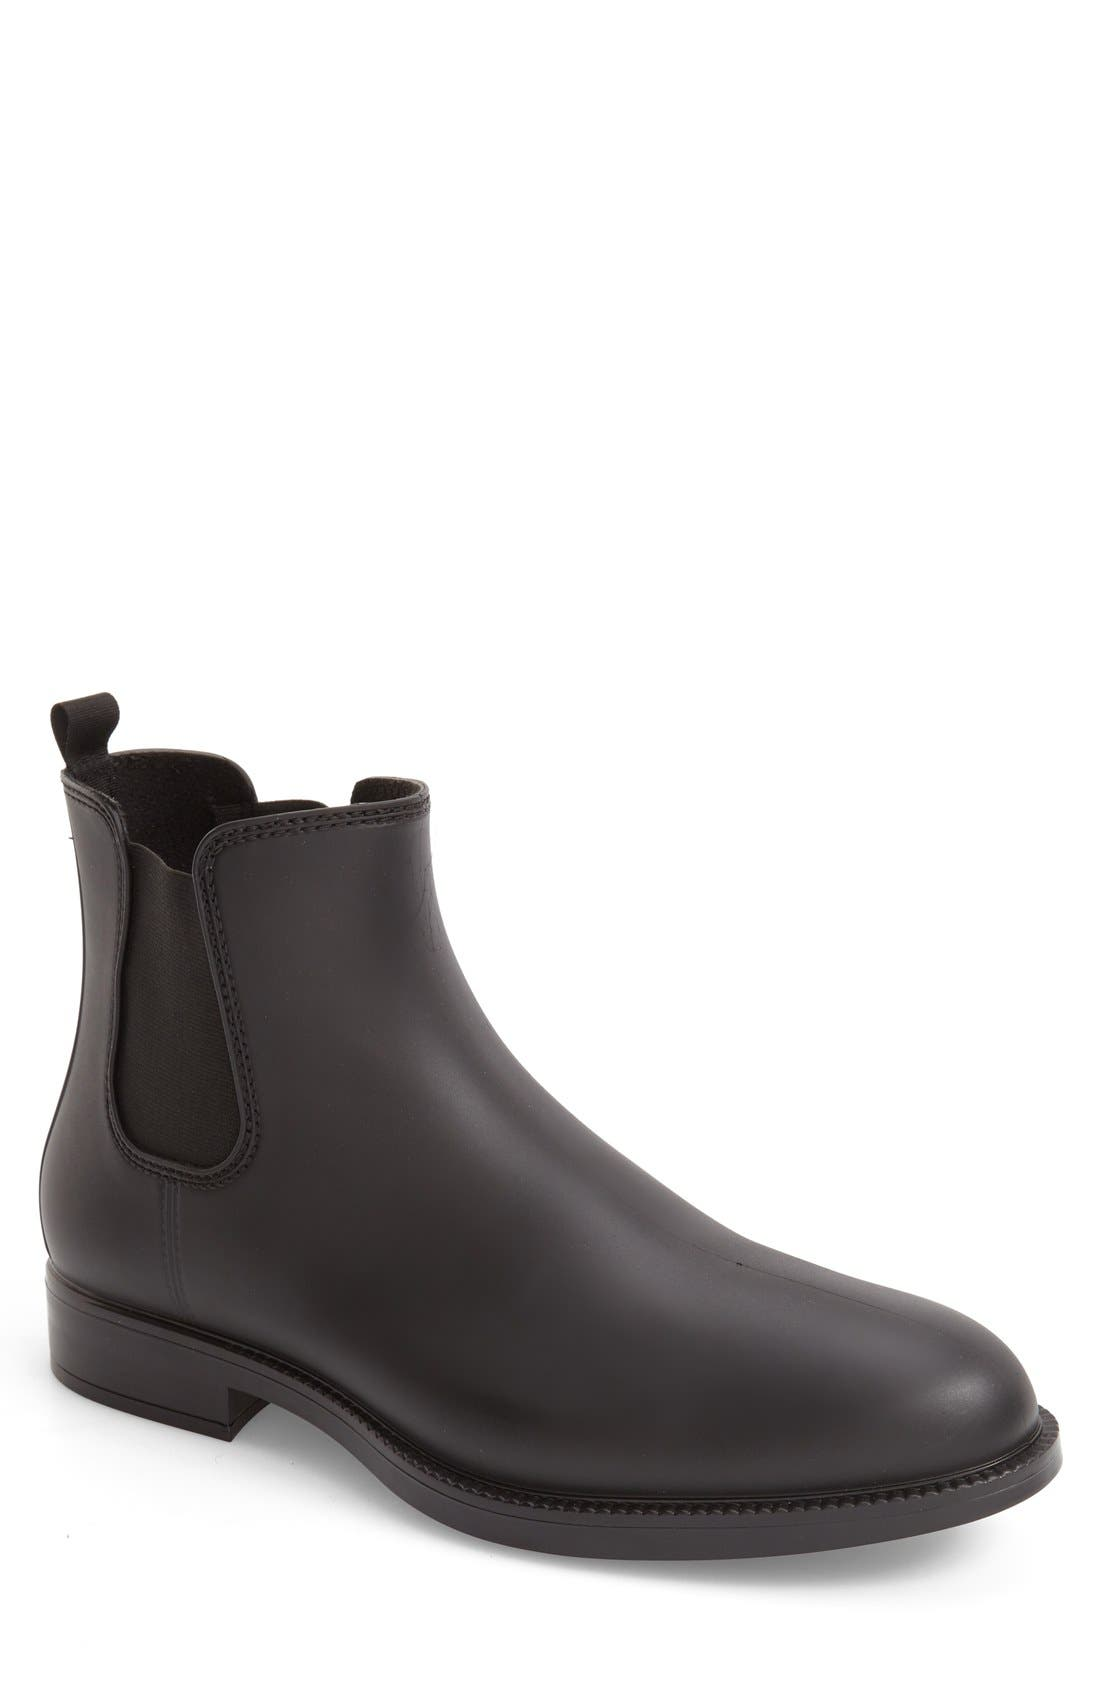 Rane Chelsea Boot,                             Main thumbnail 1, color,                             001